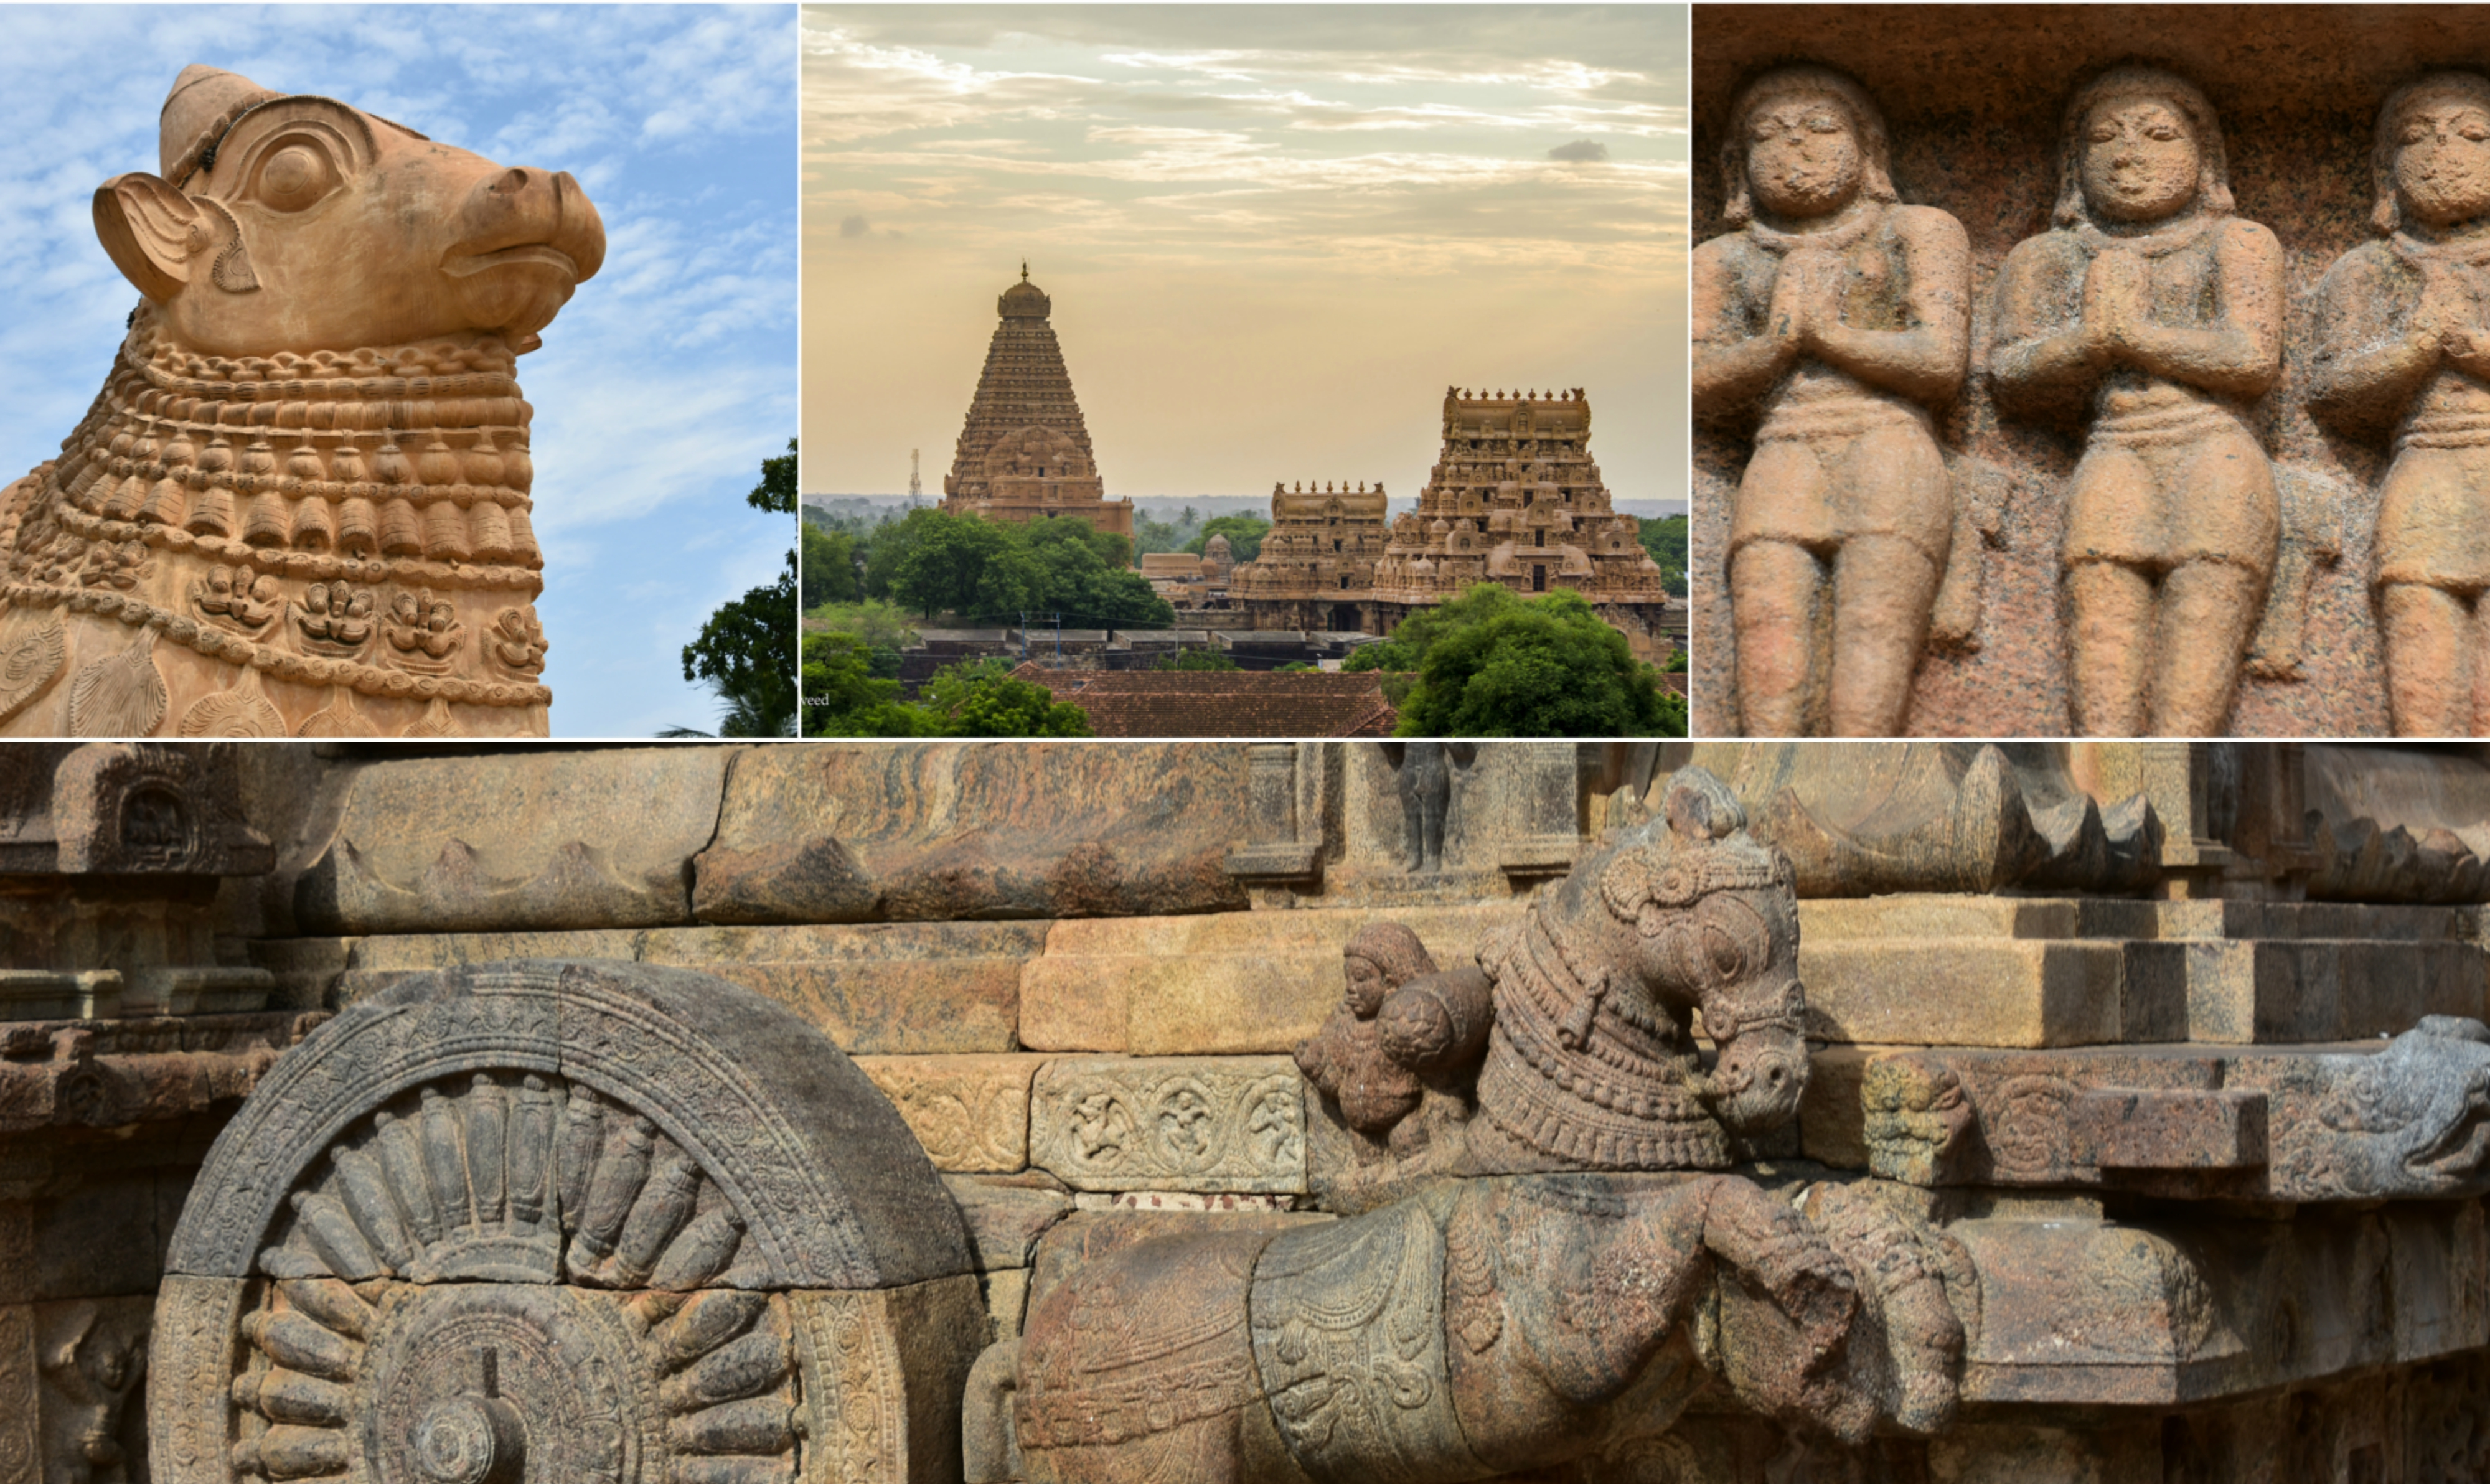 Great Living Chola Temples - Wikipedia